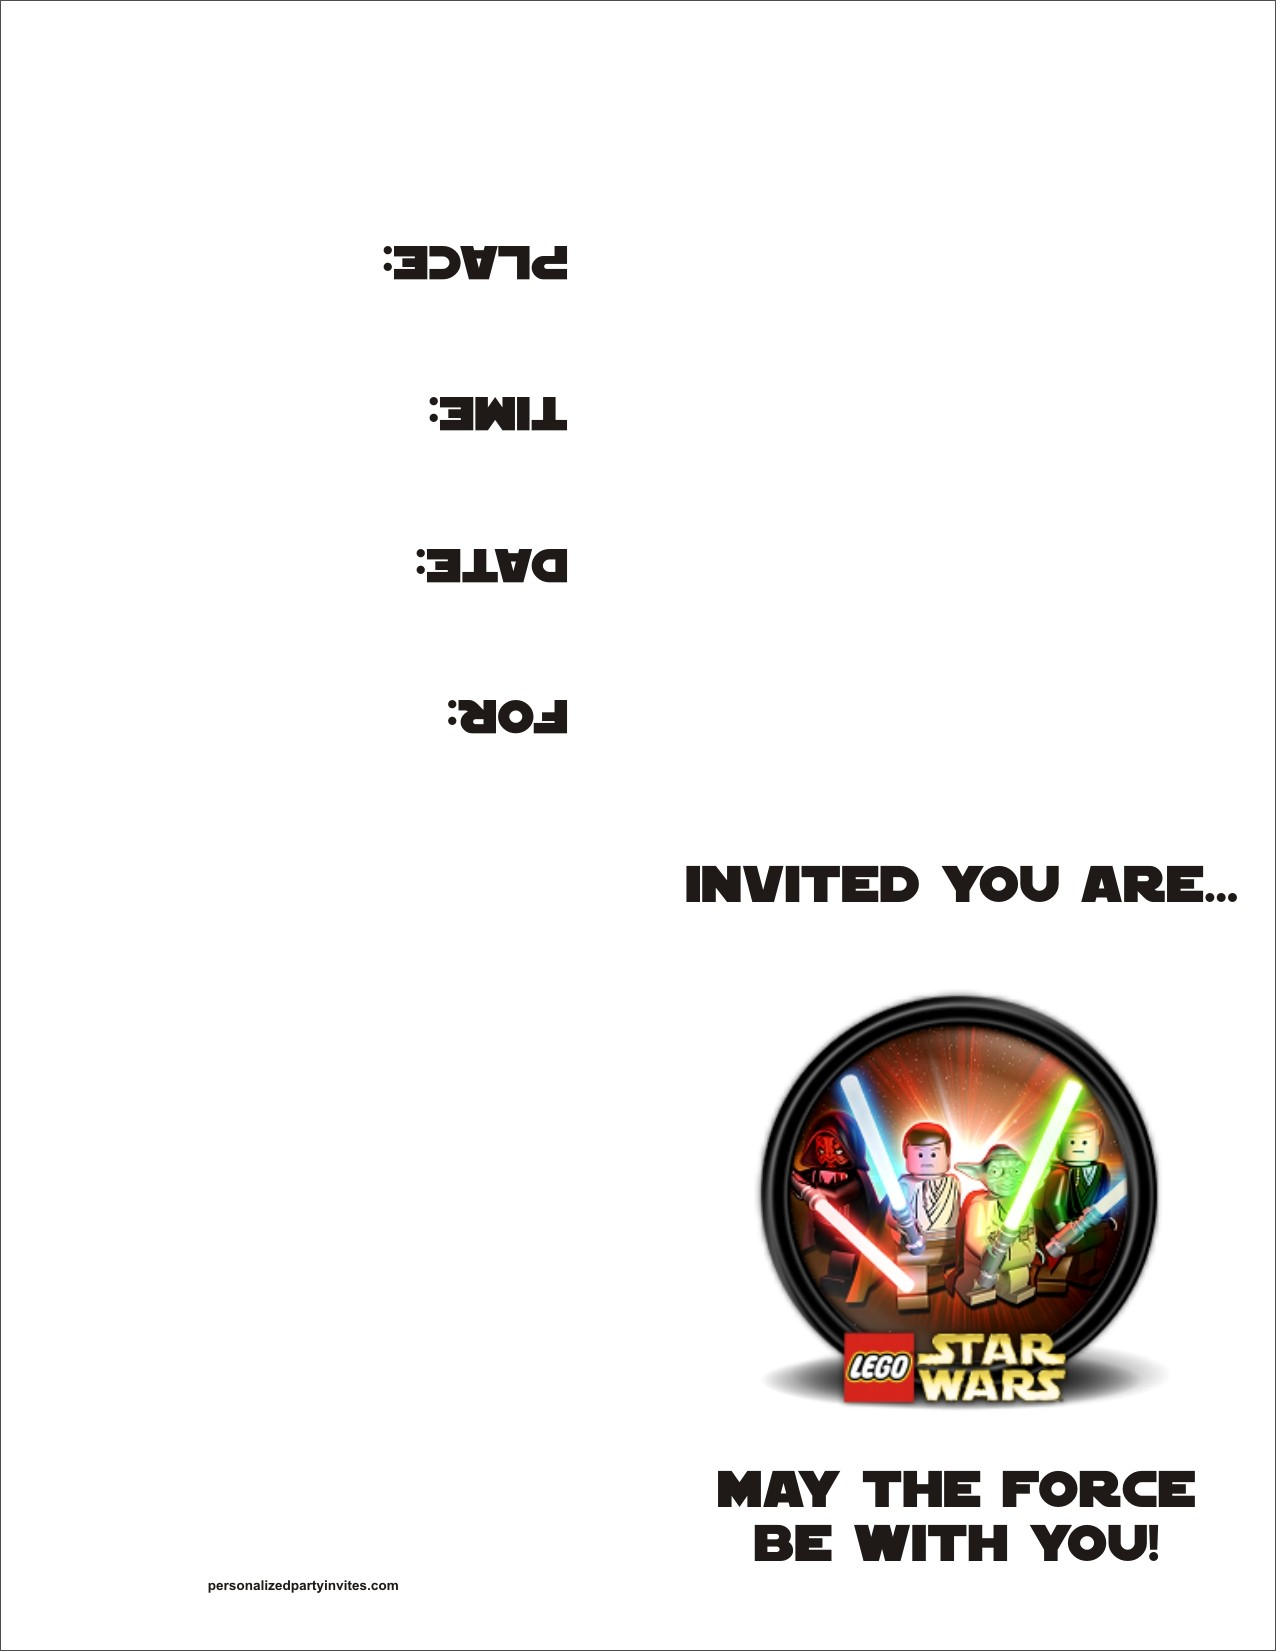 Lego Star Wars FREE Printable Birthday Party Invitation Personalized - Party invitation template: free printable birthday party invitation templates